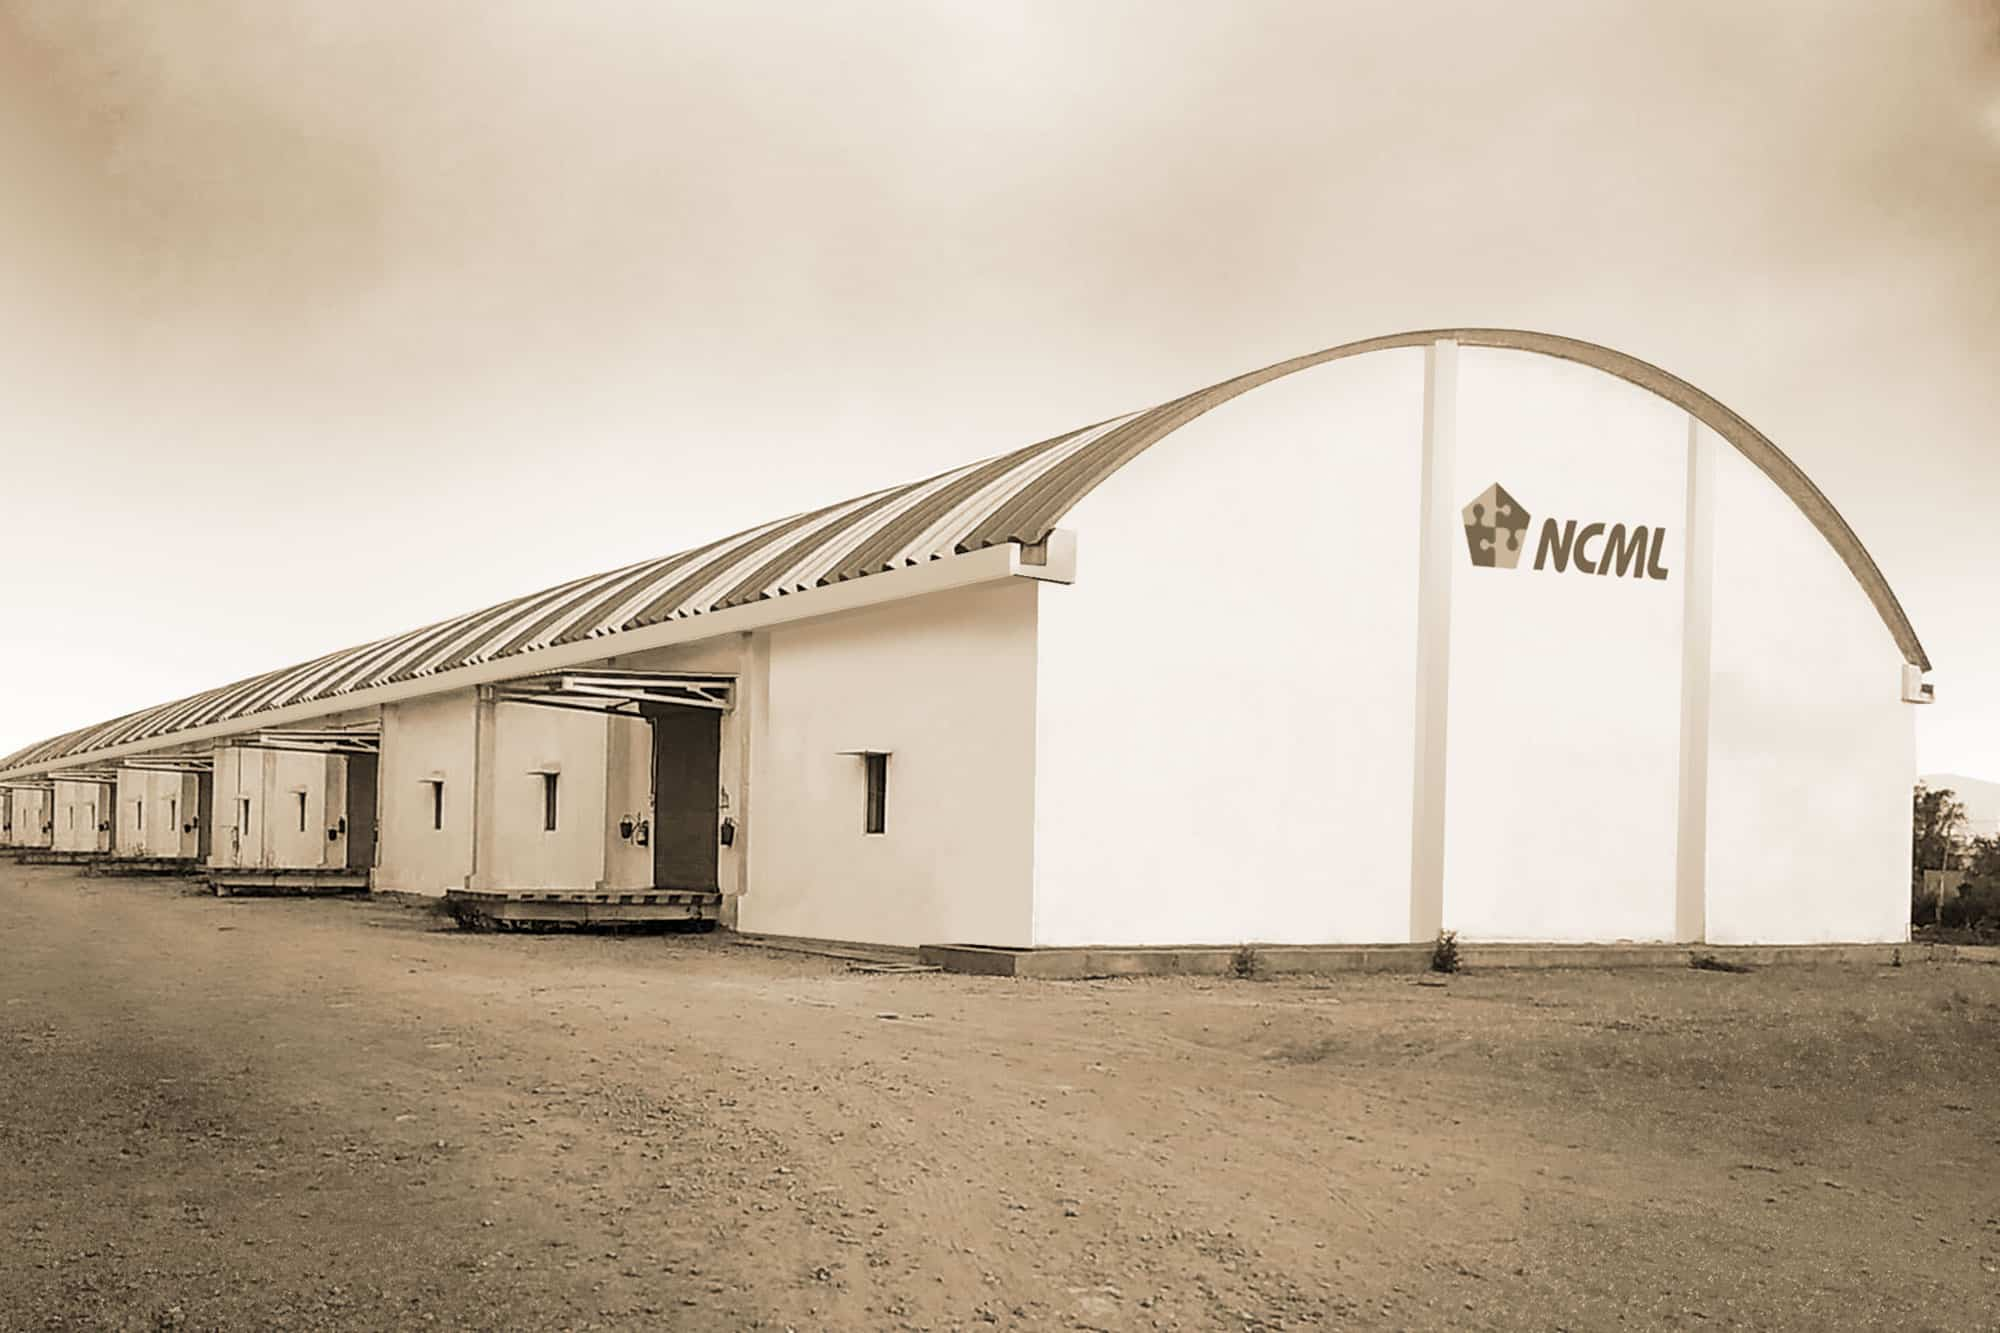 NCML undergoes name change to National Commodities Management Services Limited